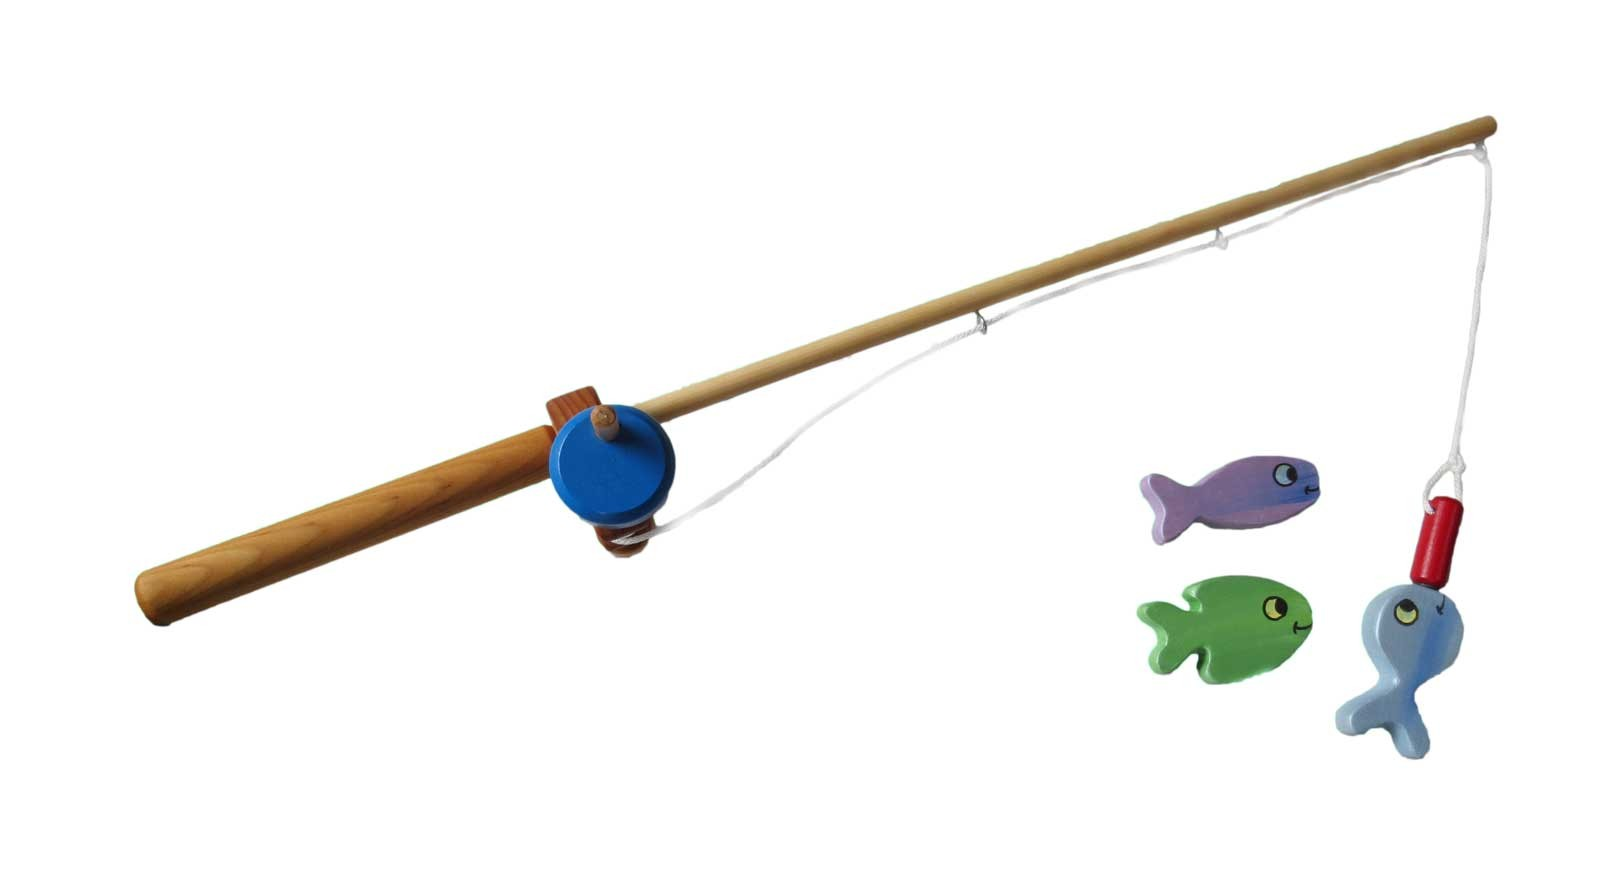 1600x886 Fishing Pole Clipart Fishing Rod Image 6 3